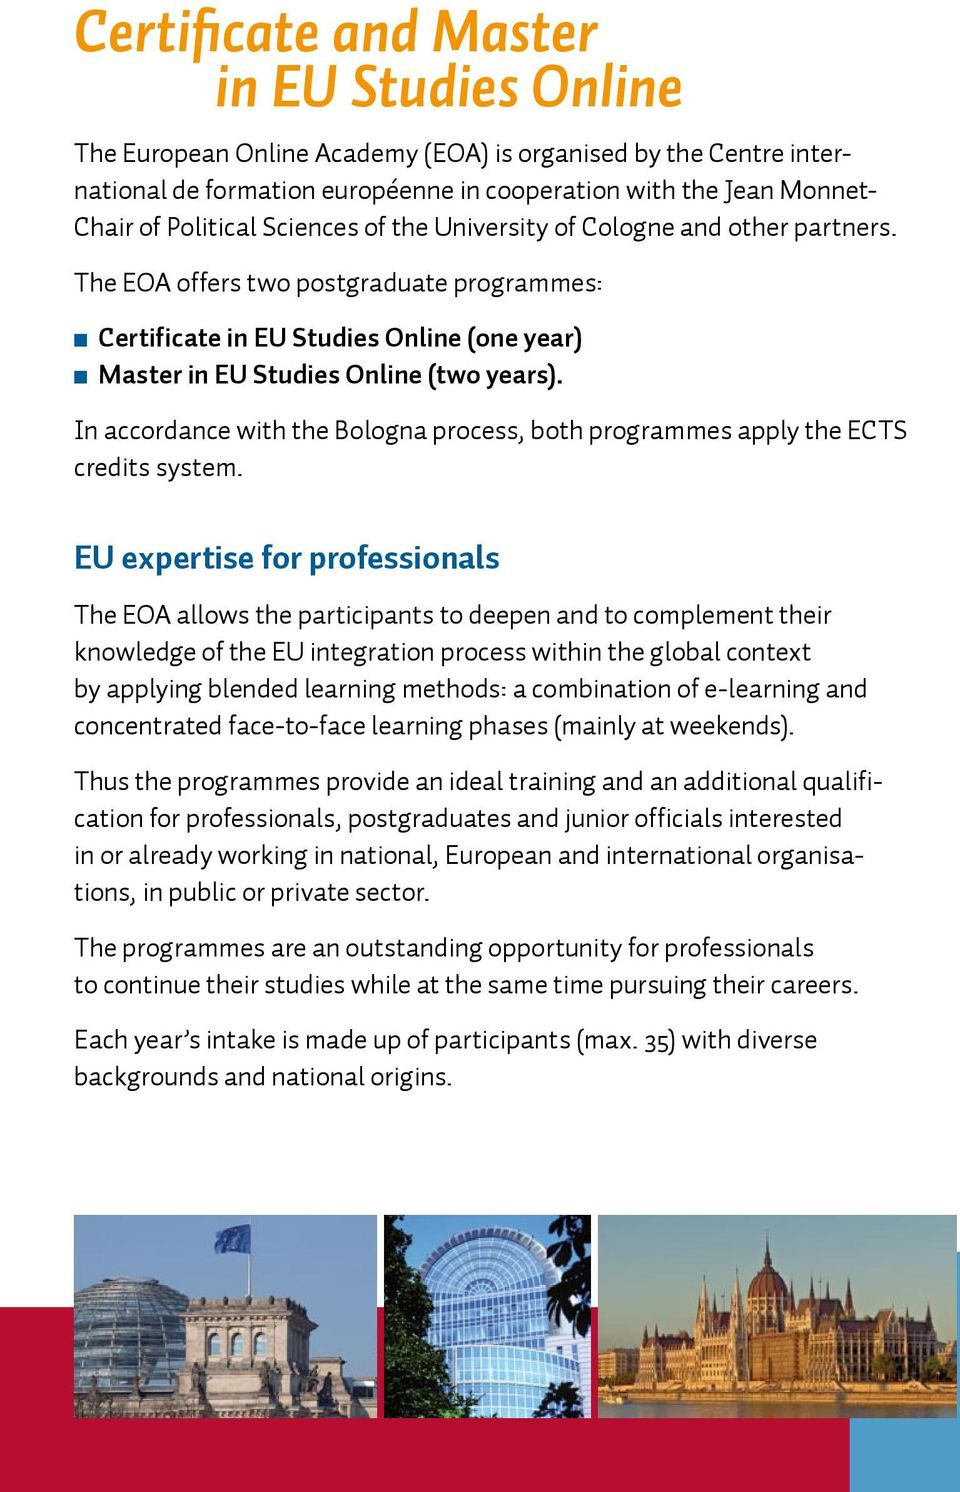 In accordance with the Bologna process, both programmes apply the ECTS credits system.